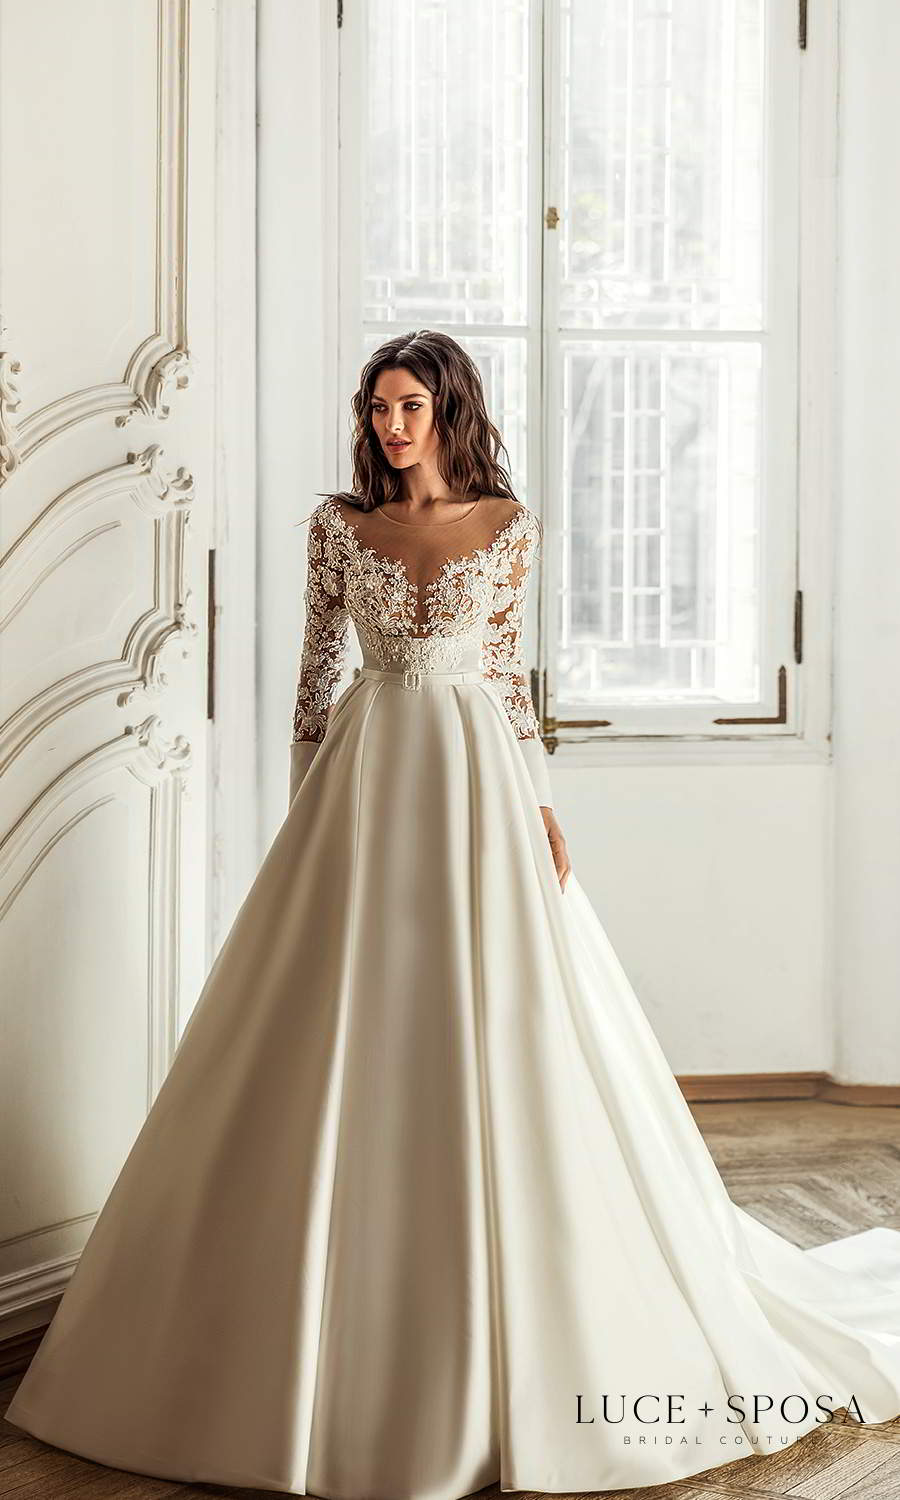 luce sposa 2021 shades of couture bridal long sleeves off shoulder v neckline embellished bodice clean skirt a line ball gown wedding dress chapel train (londyn) mv